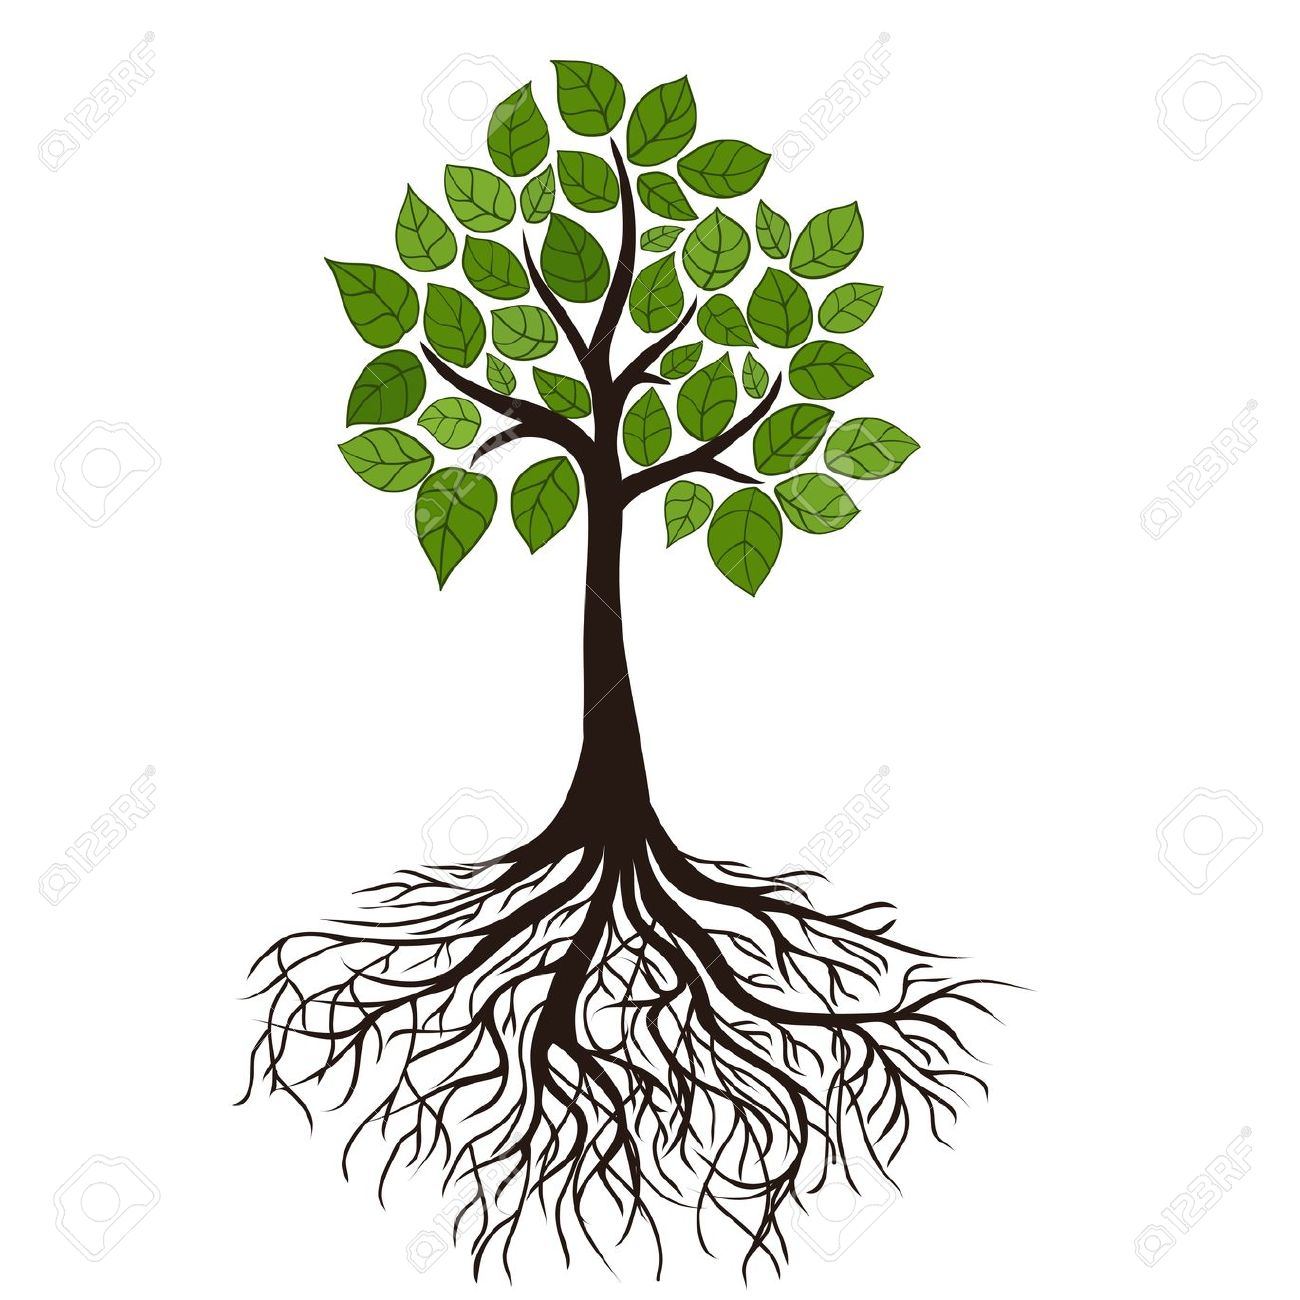 Tree Clipart With Roots at GetDrawings.com.